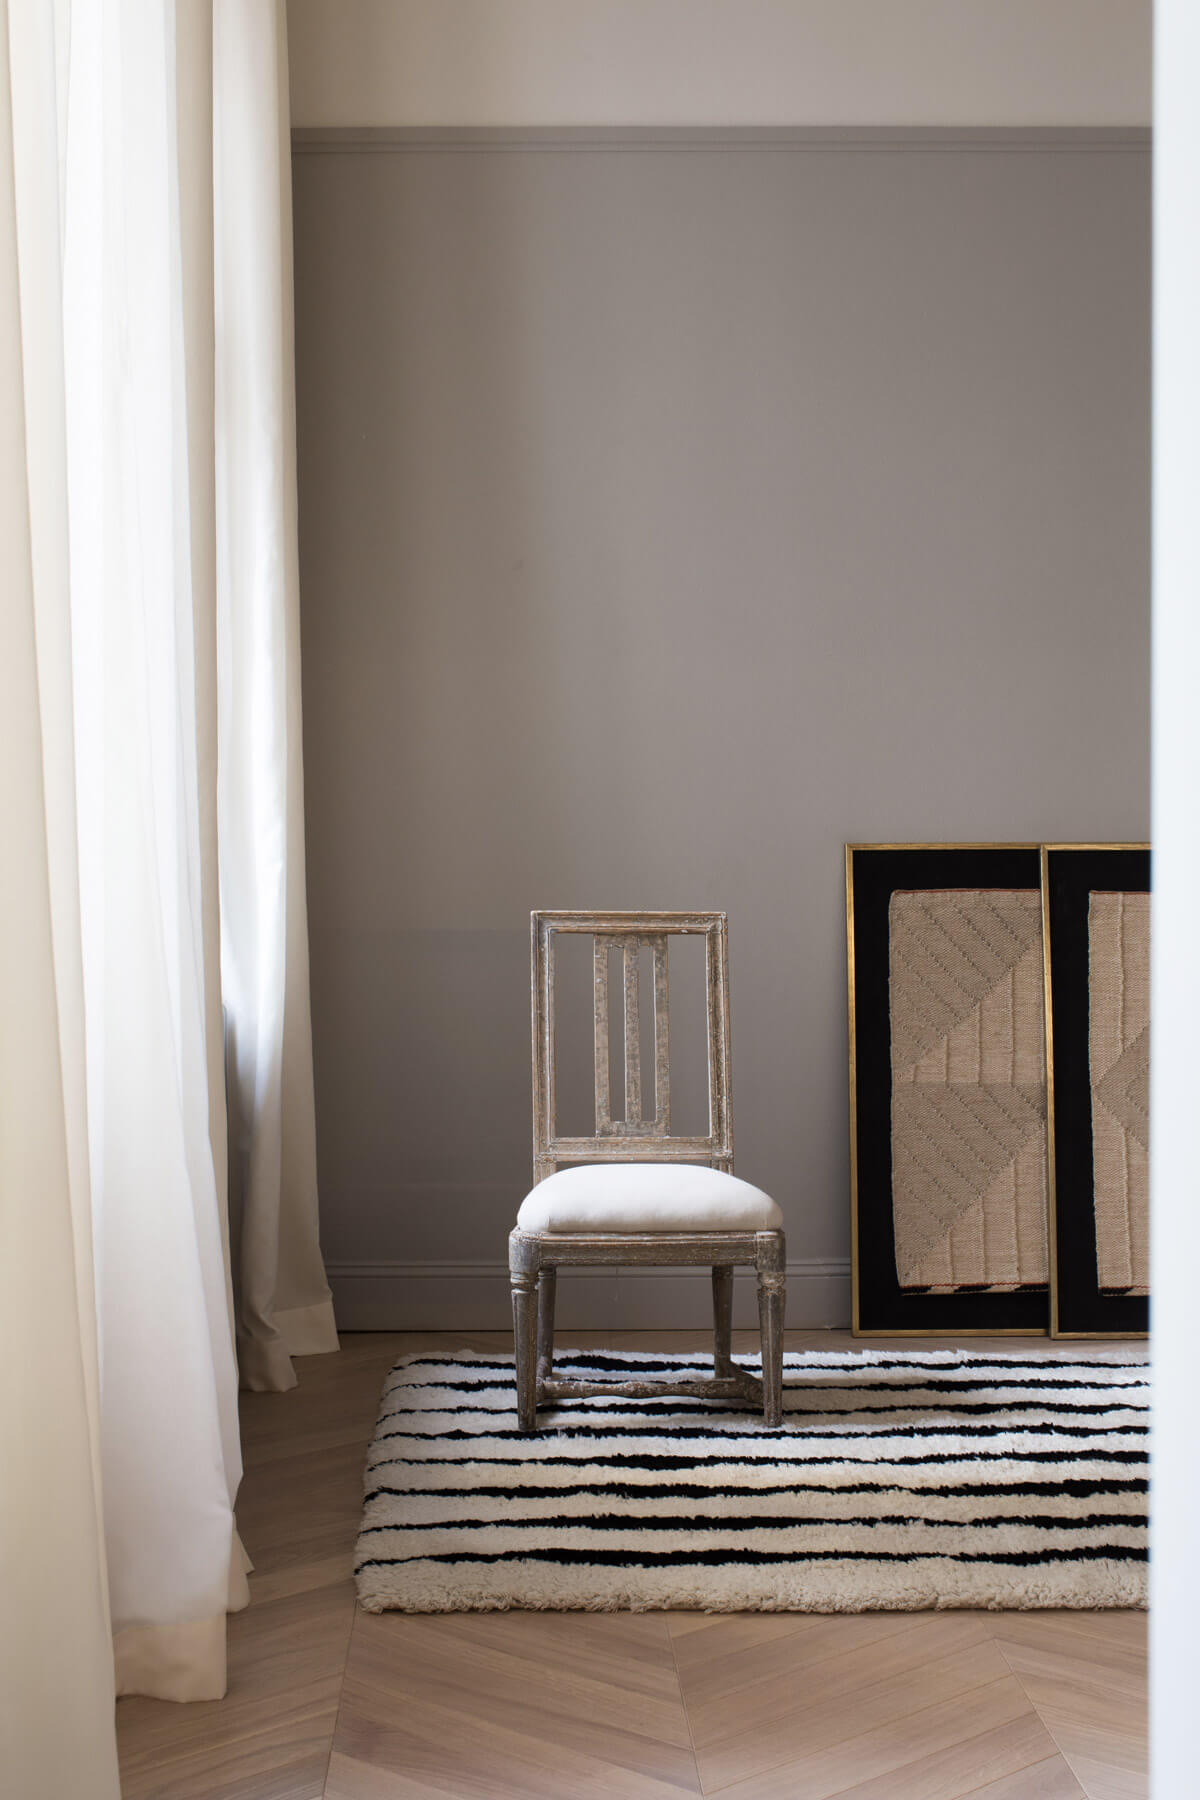 Fjord displayed in a beautiful apartment styled with an antique chair.